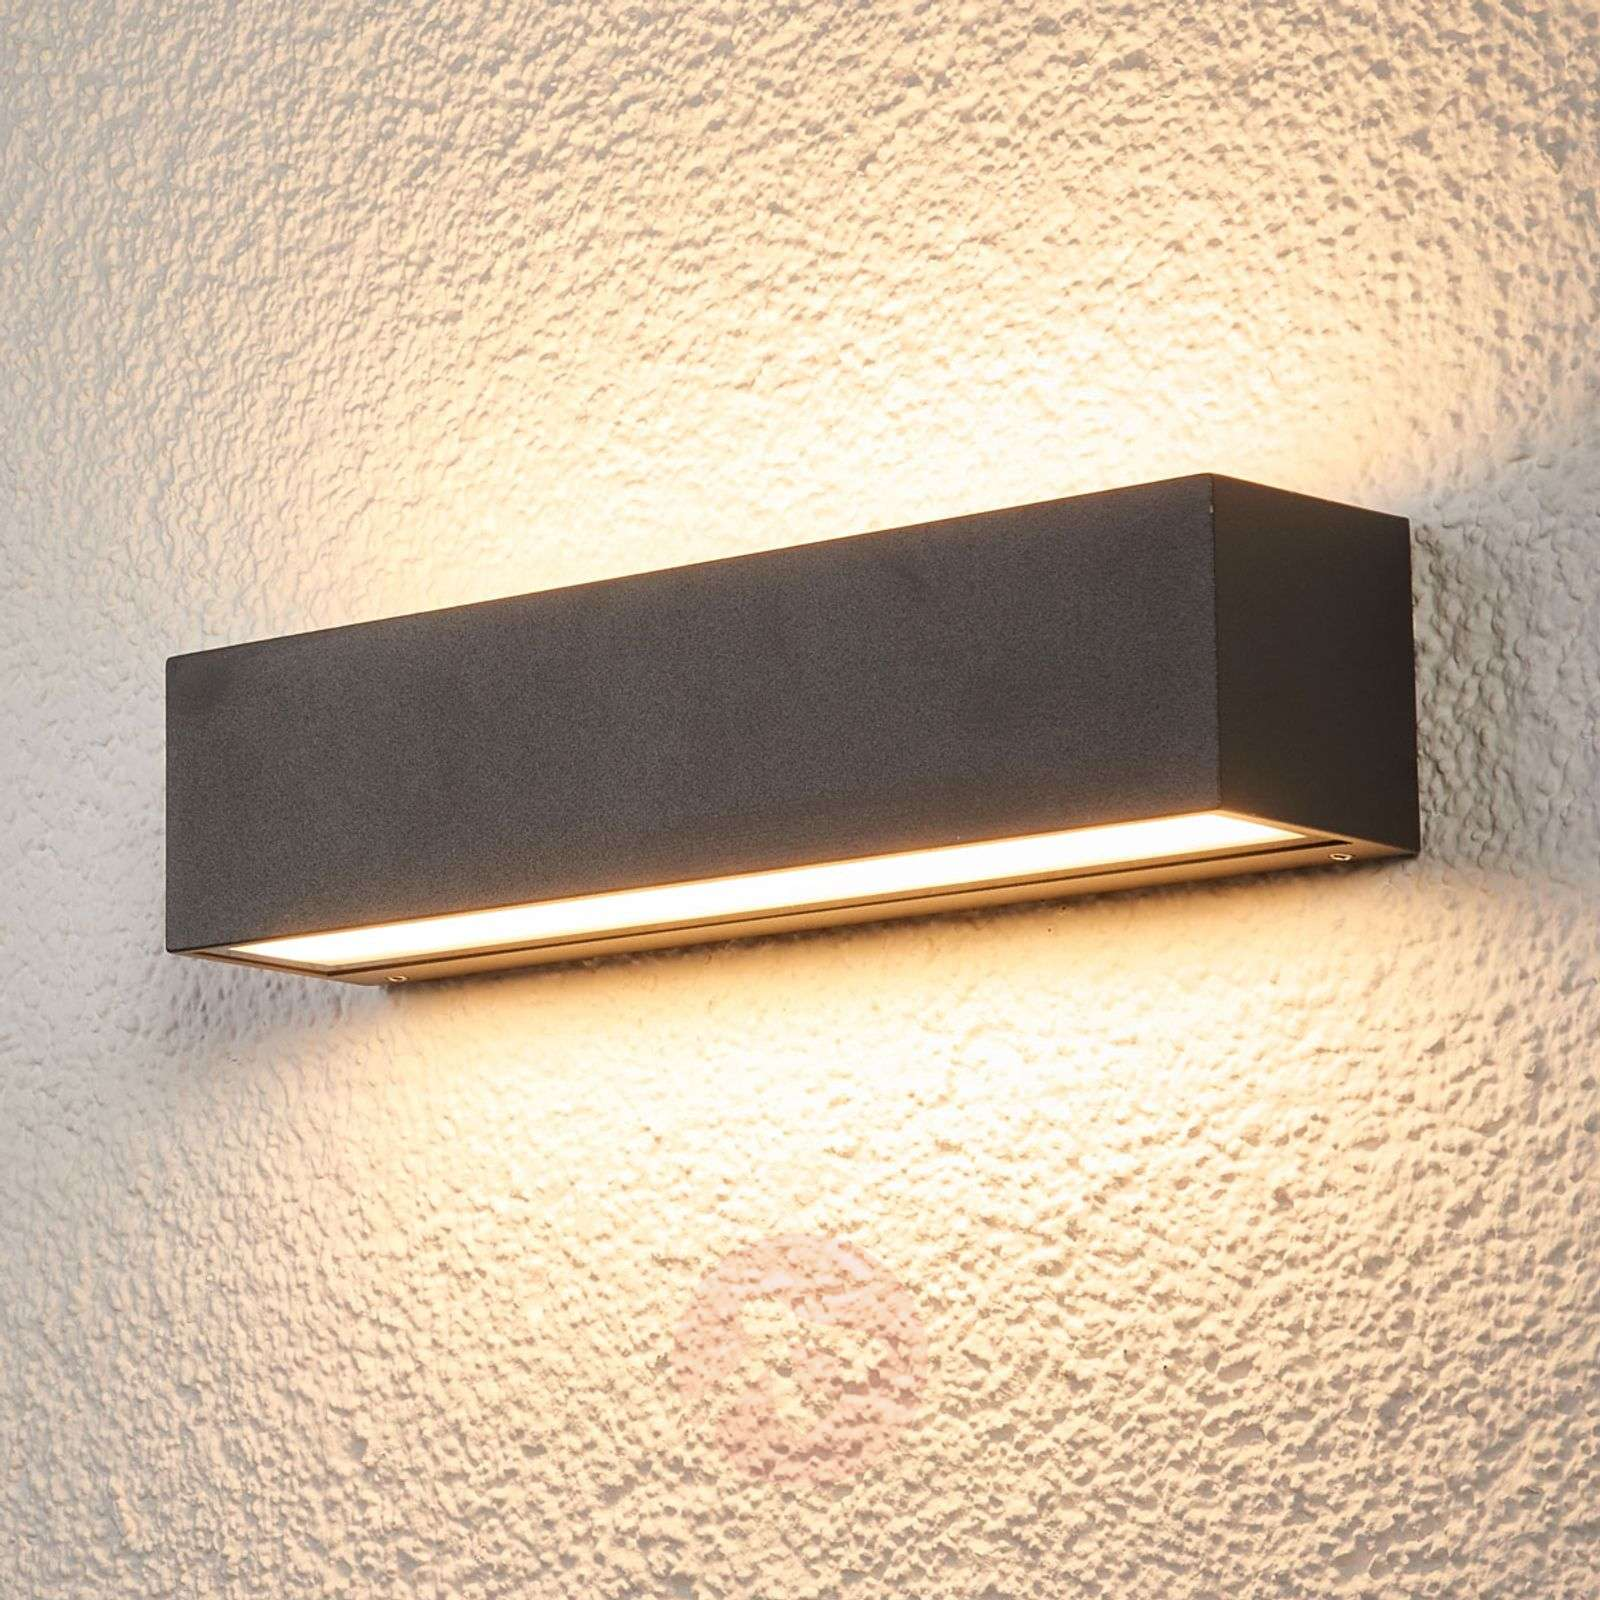 Tilde applique longue LED pr ext. IP65-9616101-04